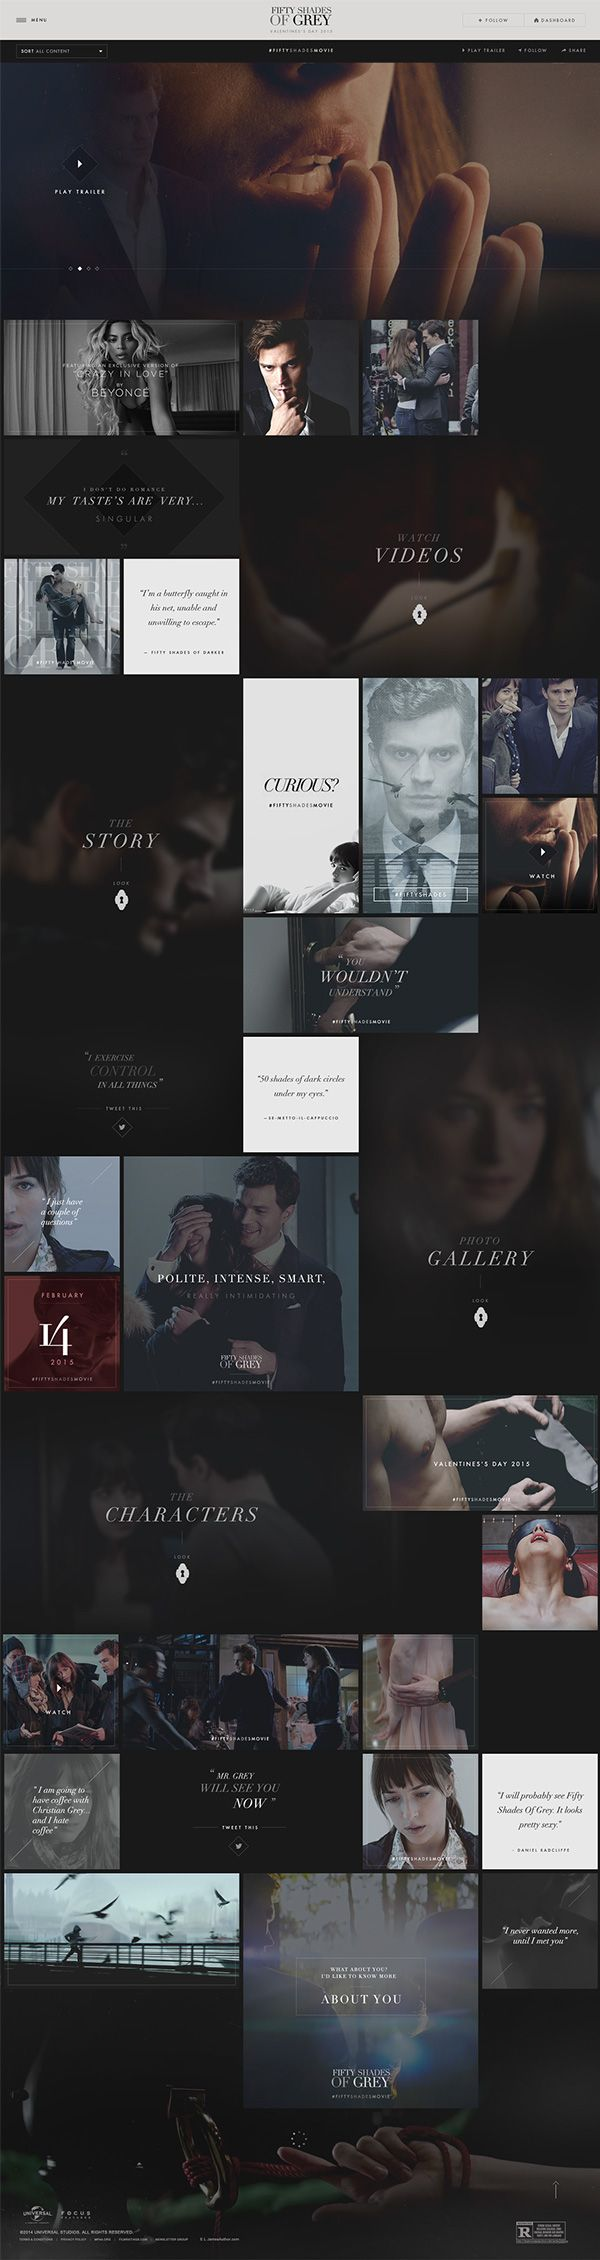 Fifty Shades of Grey - official site on Web Design Served